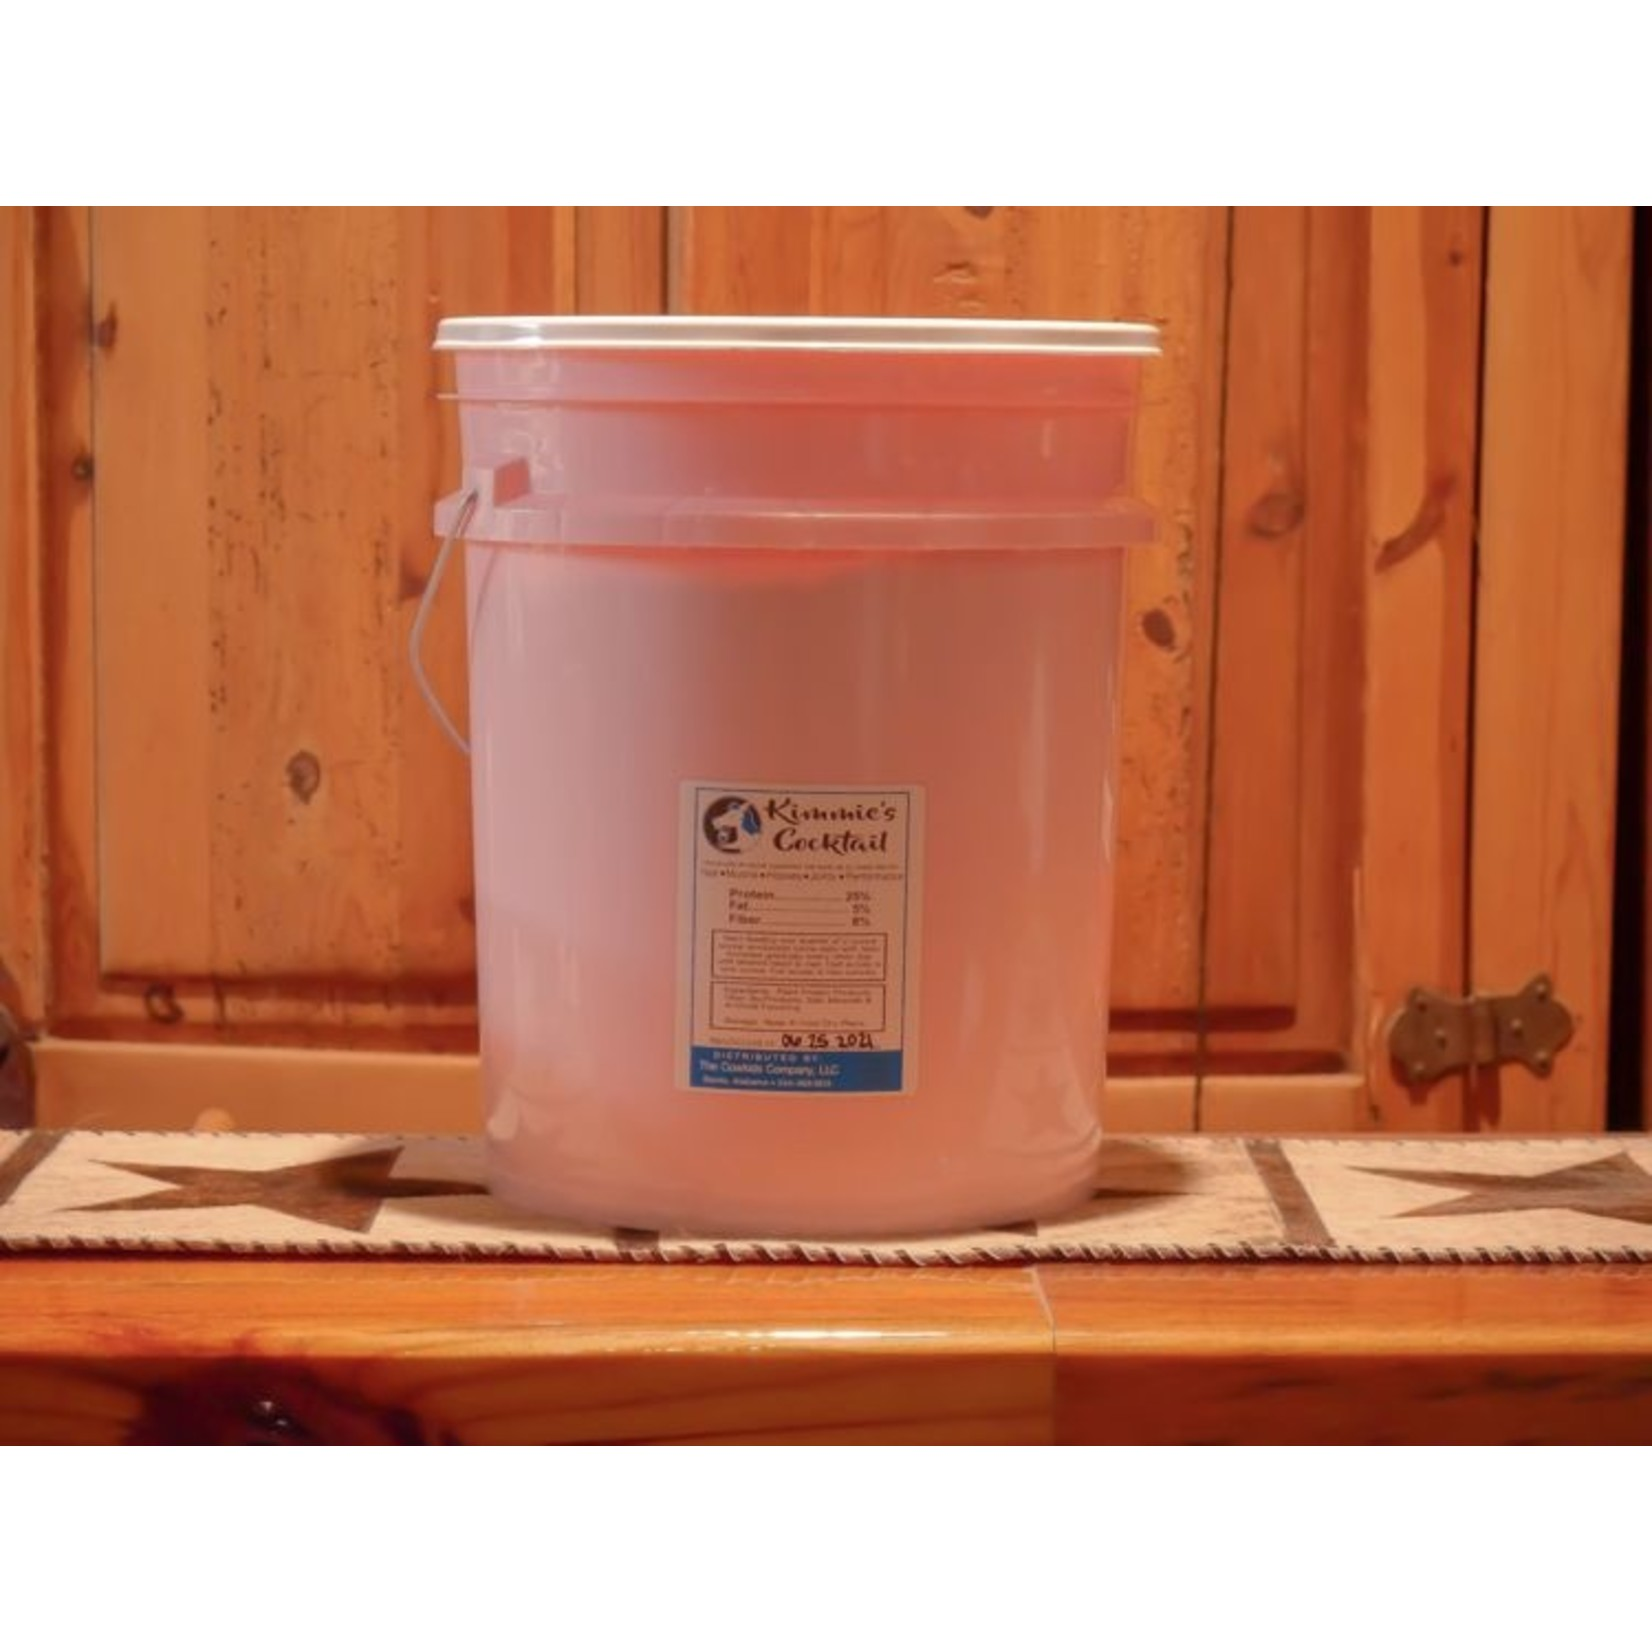 Kimmie's Cocktail 25lb Bucket